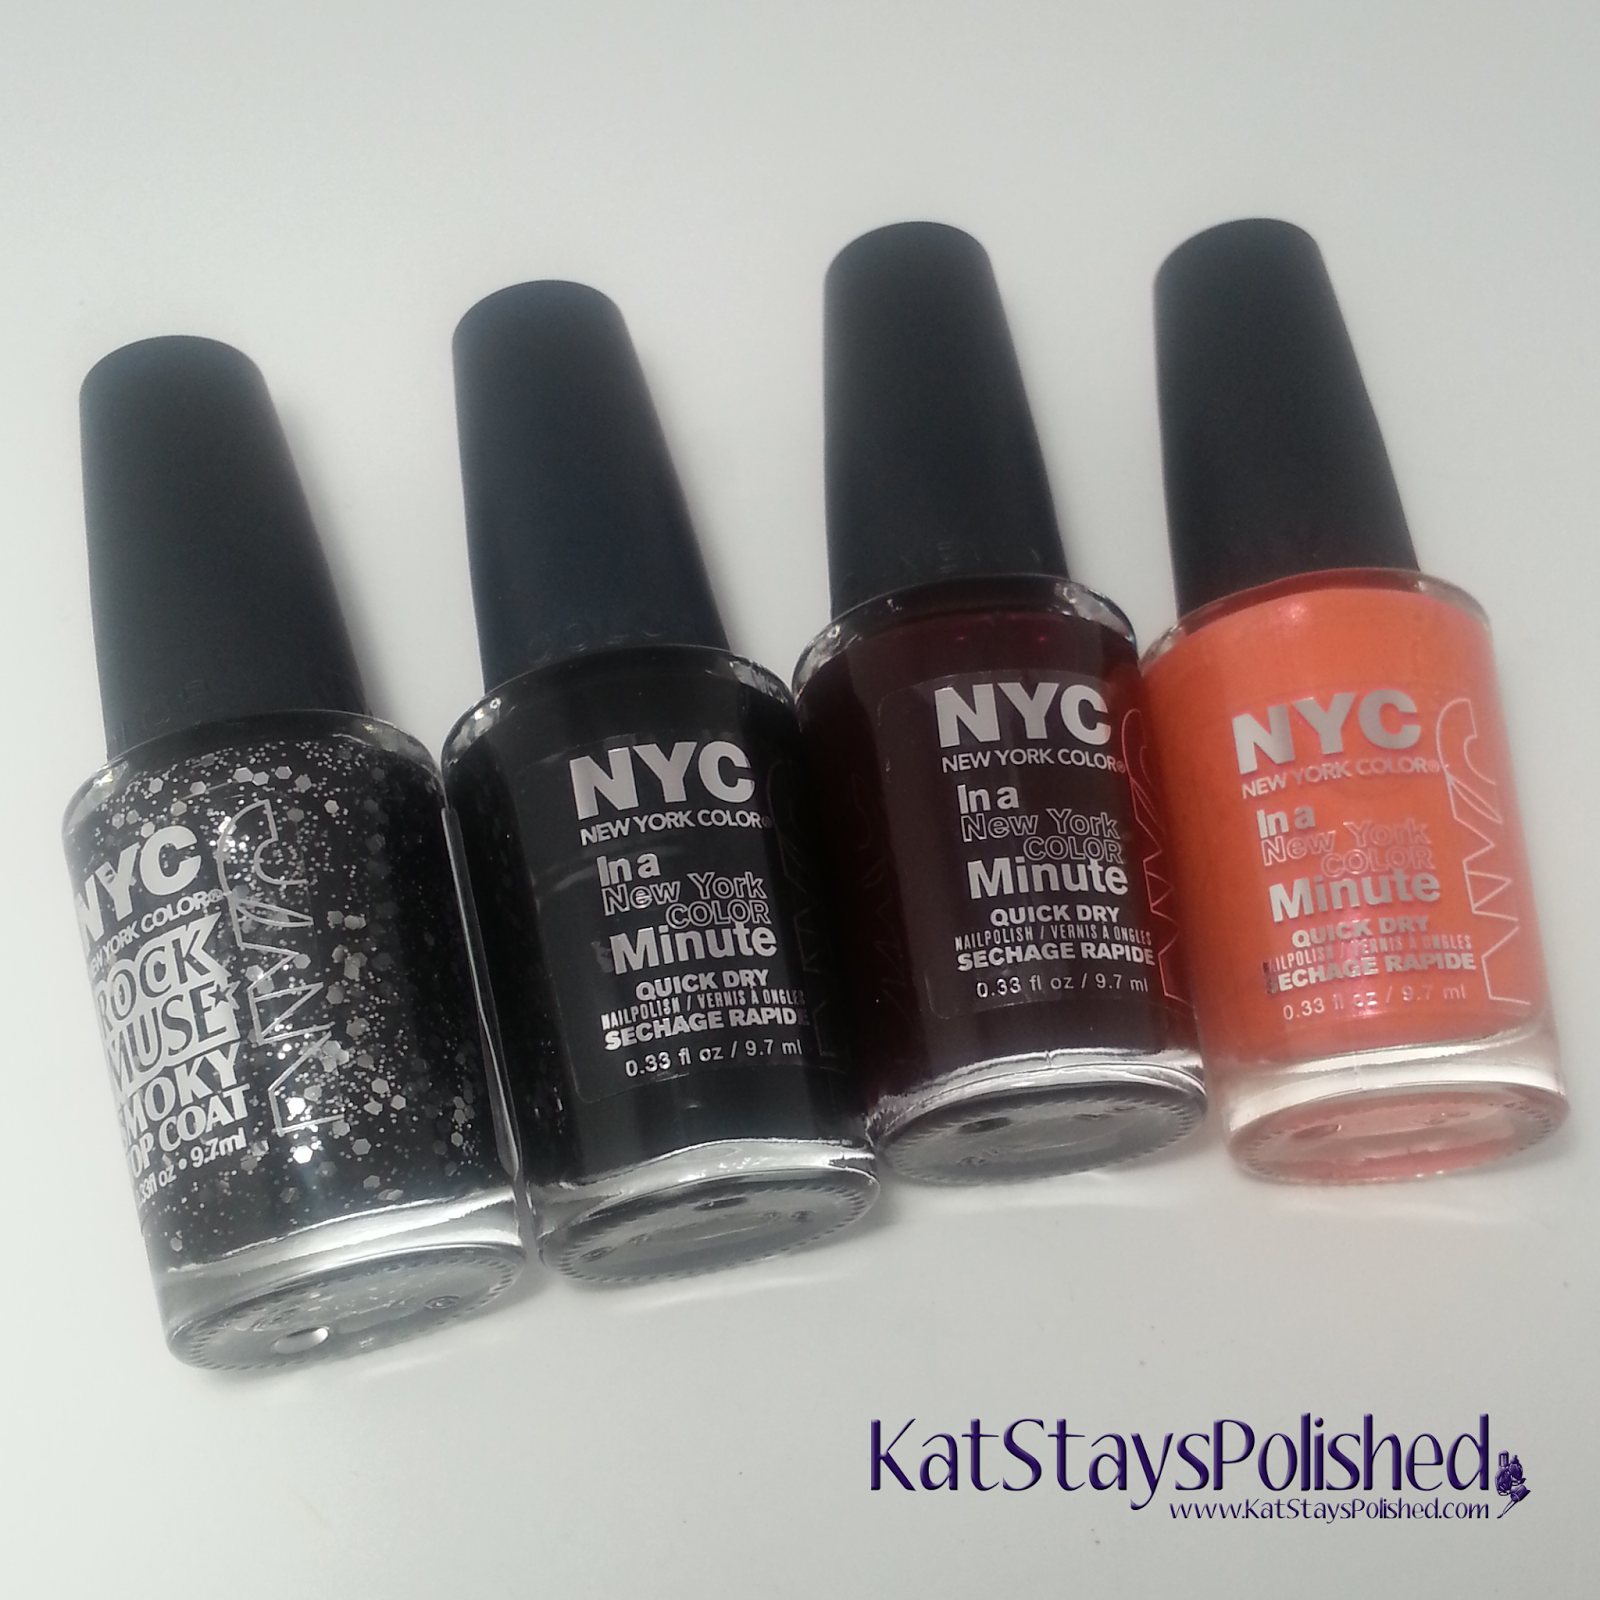 NYC New York Color - Midnight Beauty Collection | Kat Stays Polished